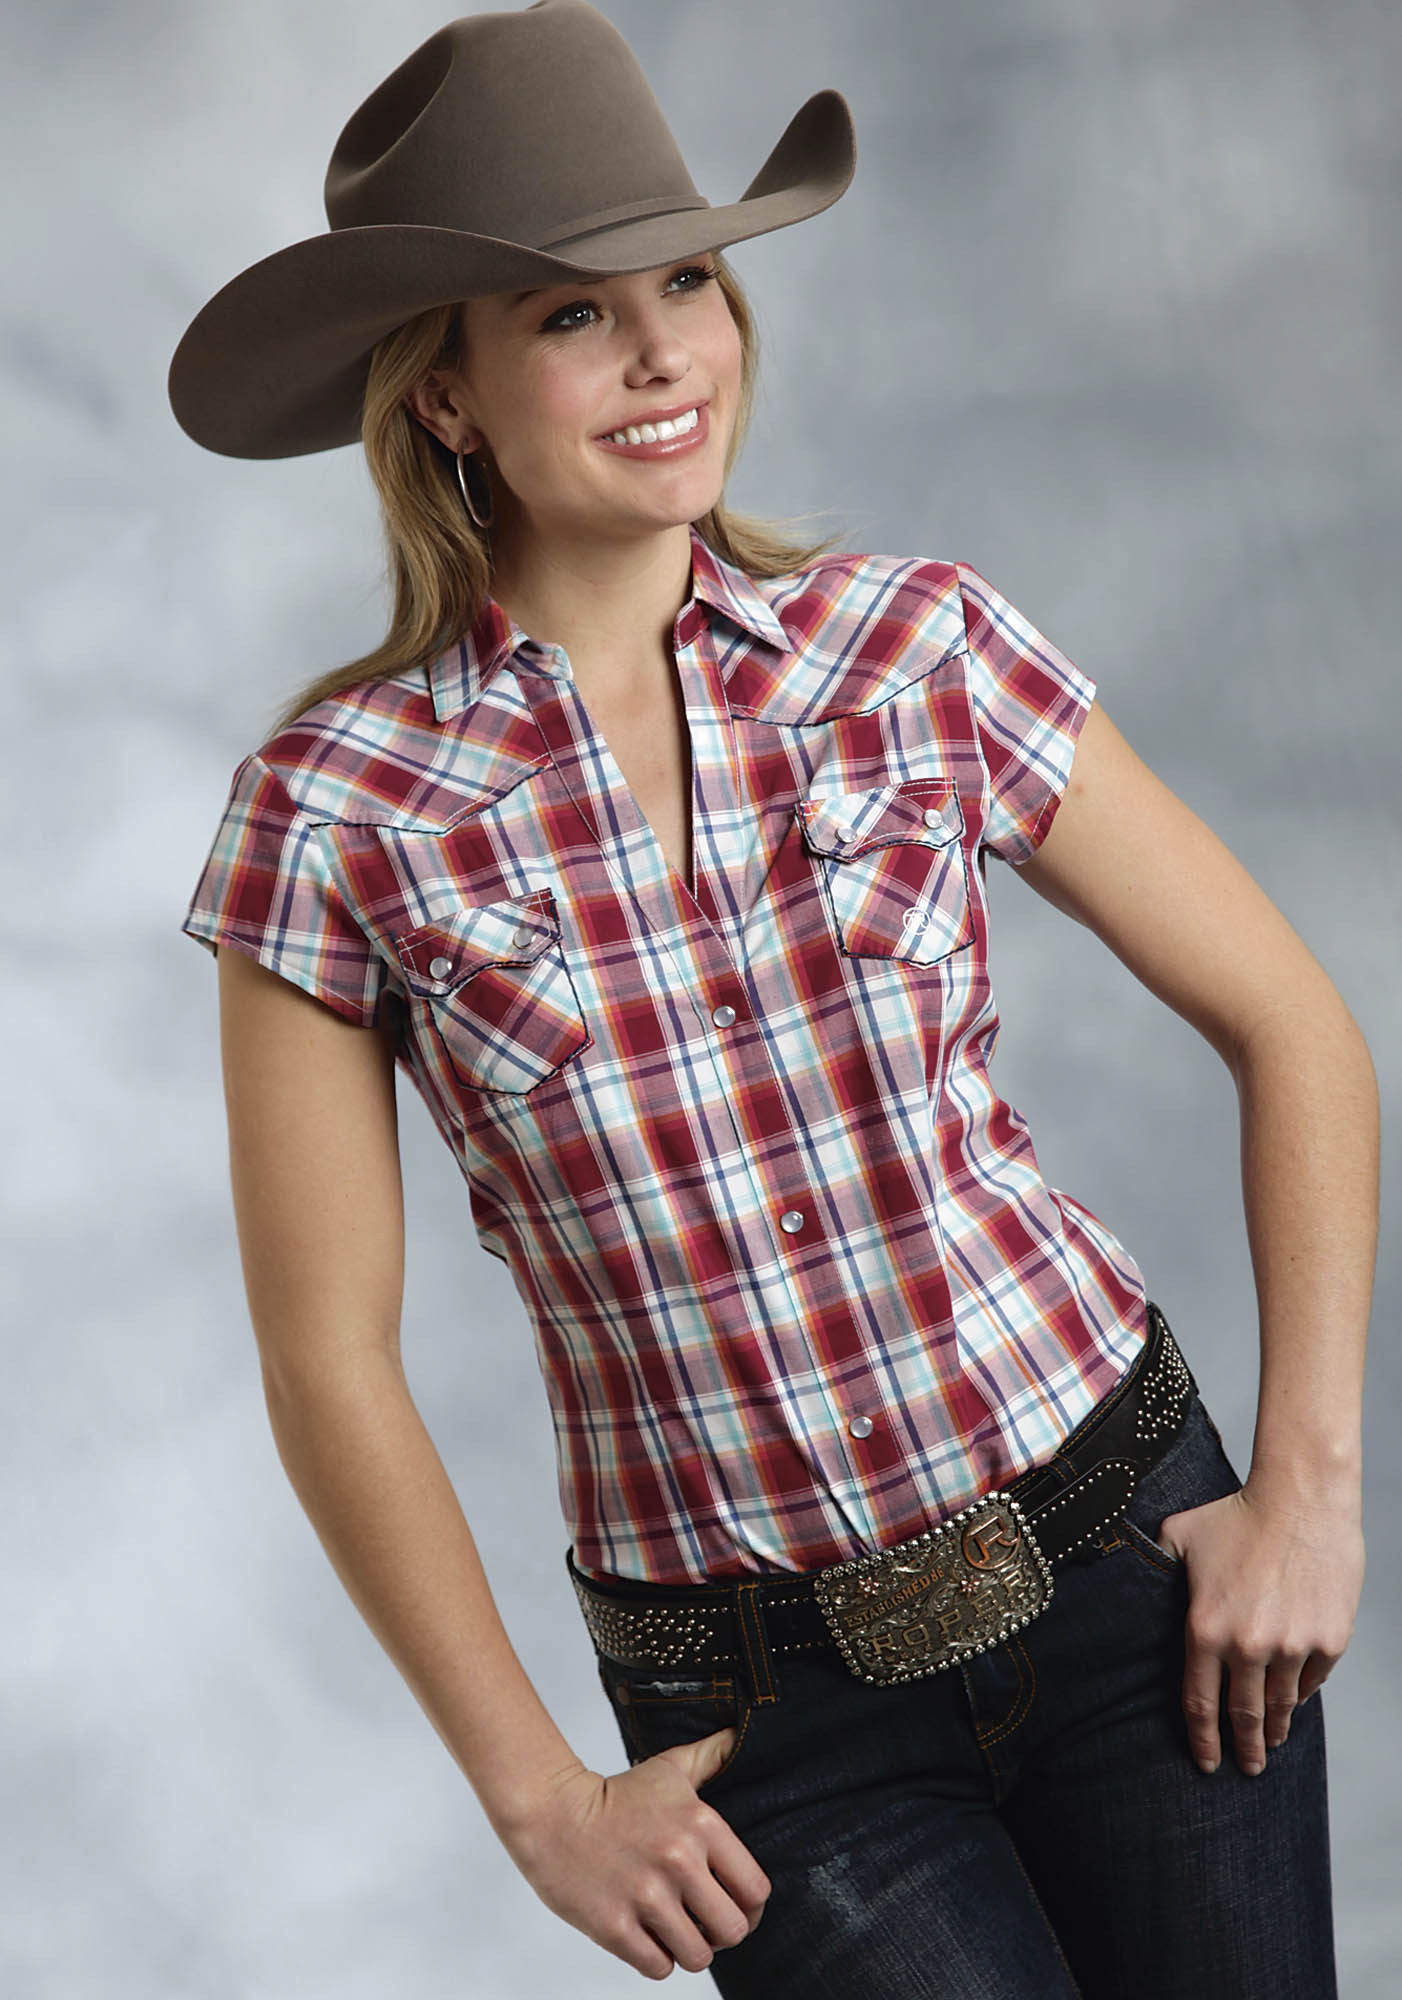 Cowgirl Shirts For Women 624a1043ba7d